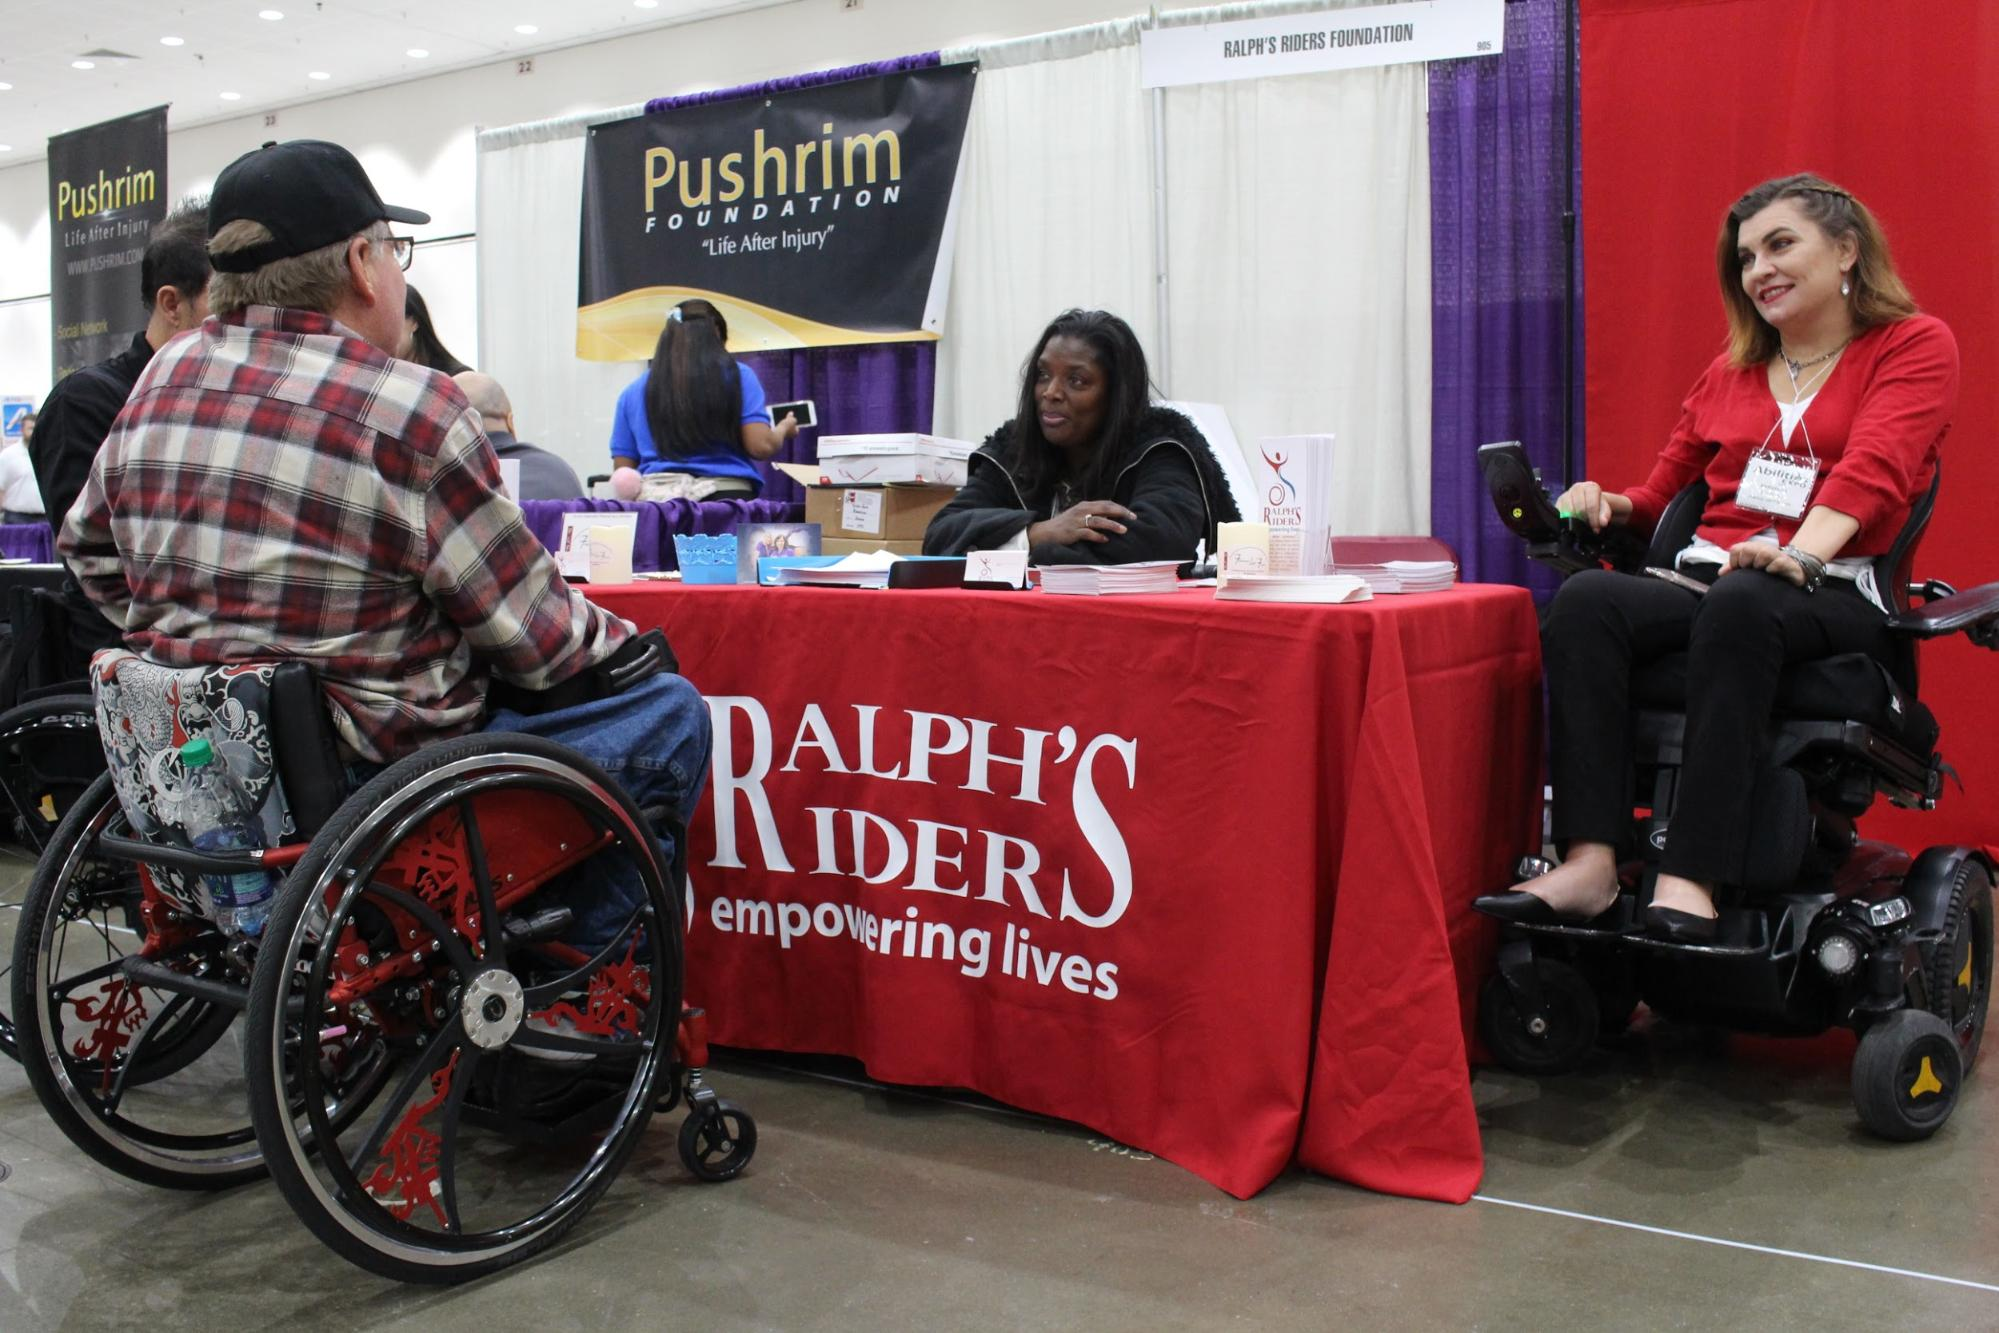 Marcy Lovett and Margarita Elizondo working the Ralph's Riders booth at Abilities Expo. A man in a wheelchair is visiting the booth.